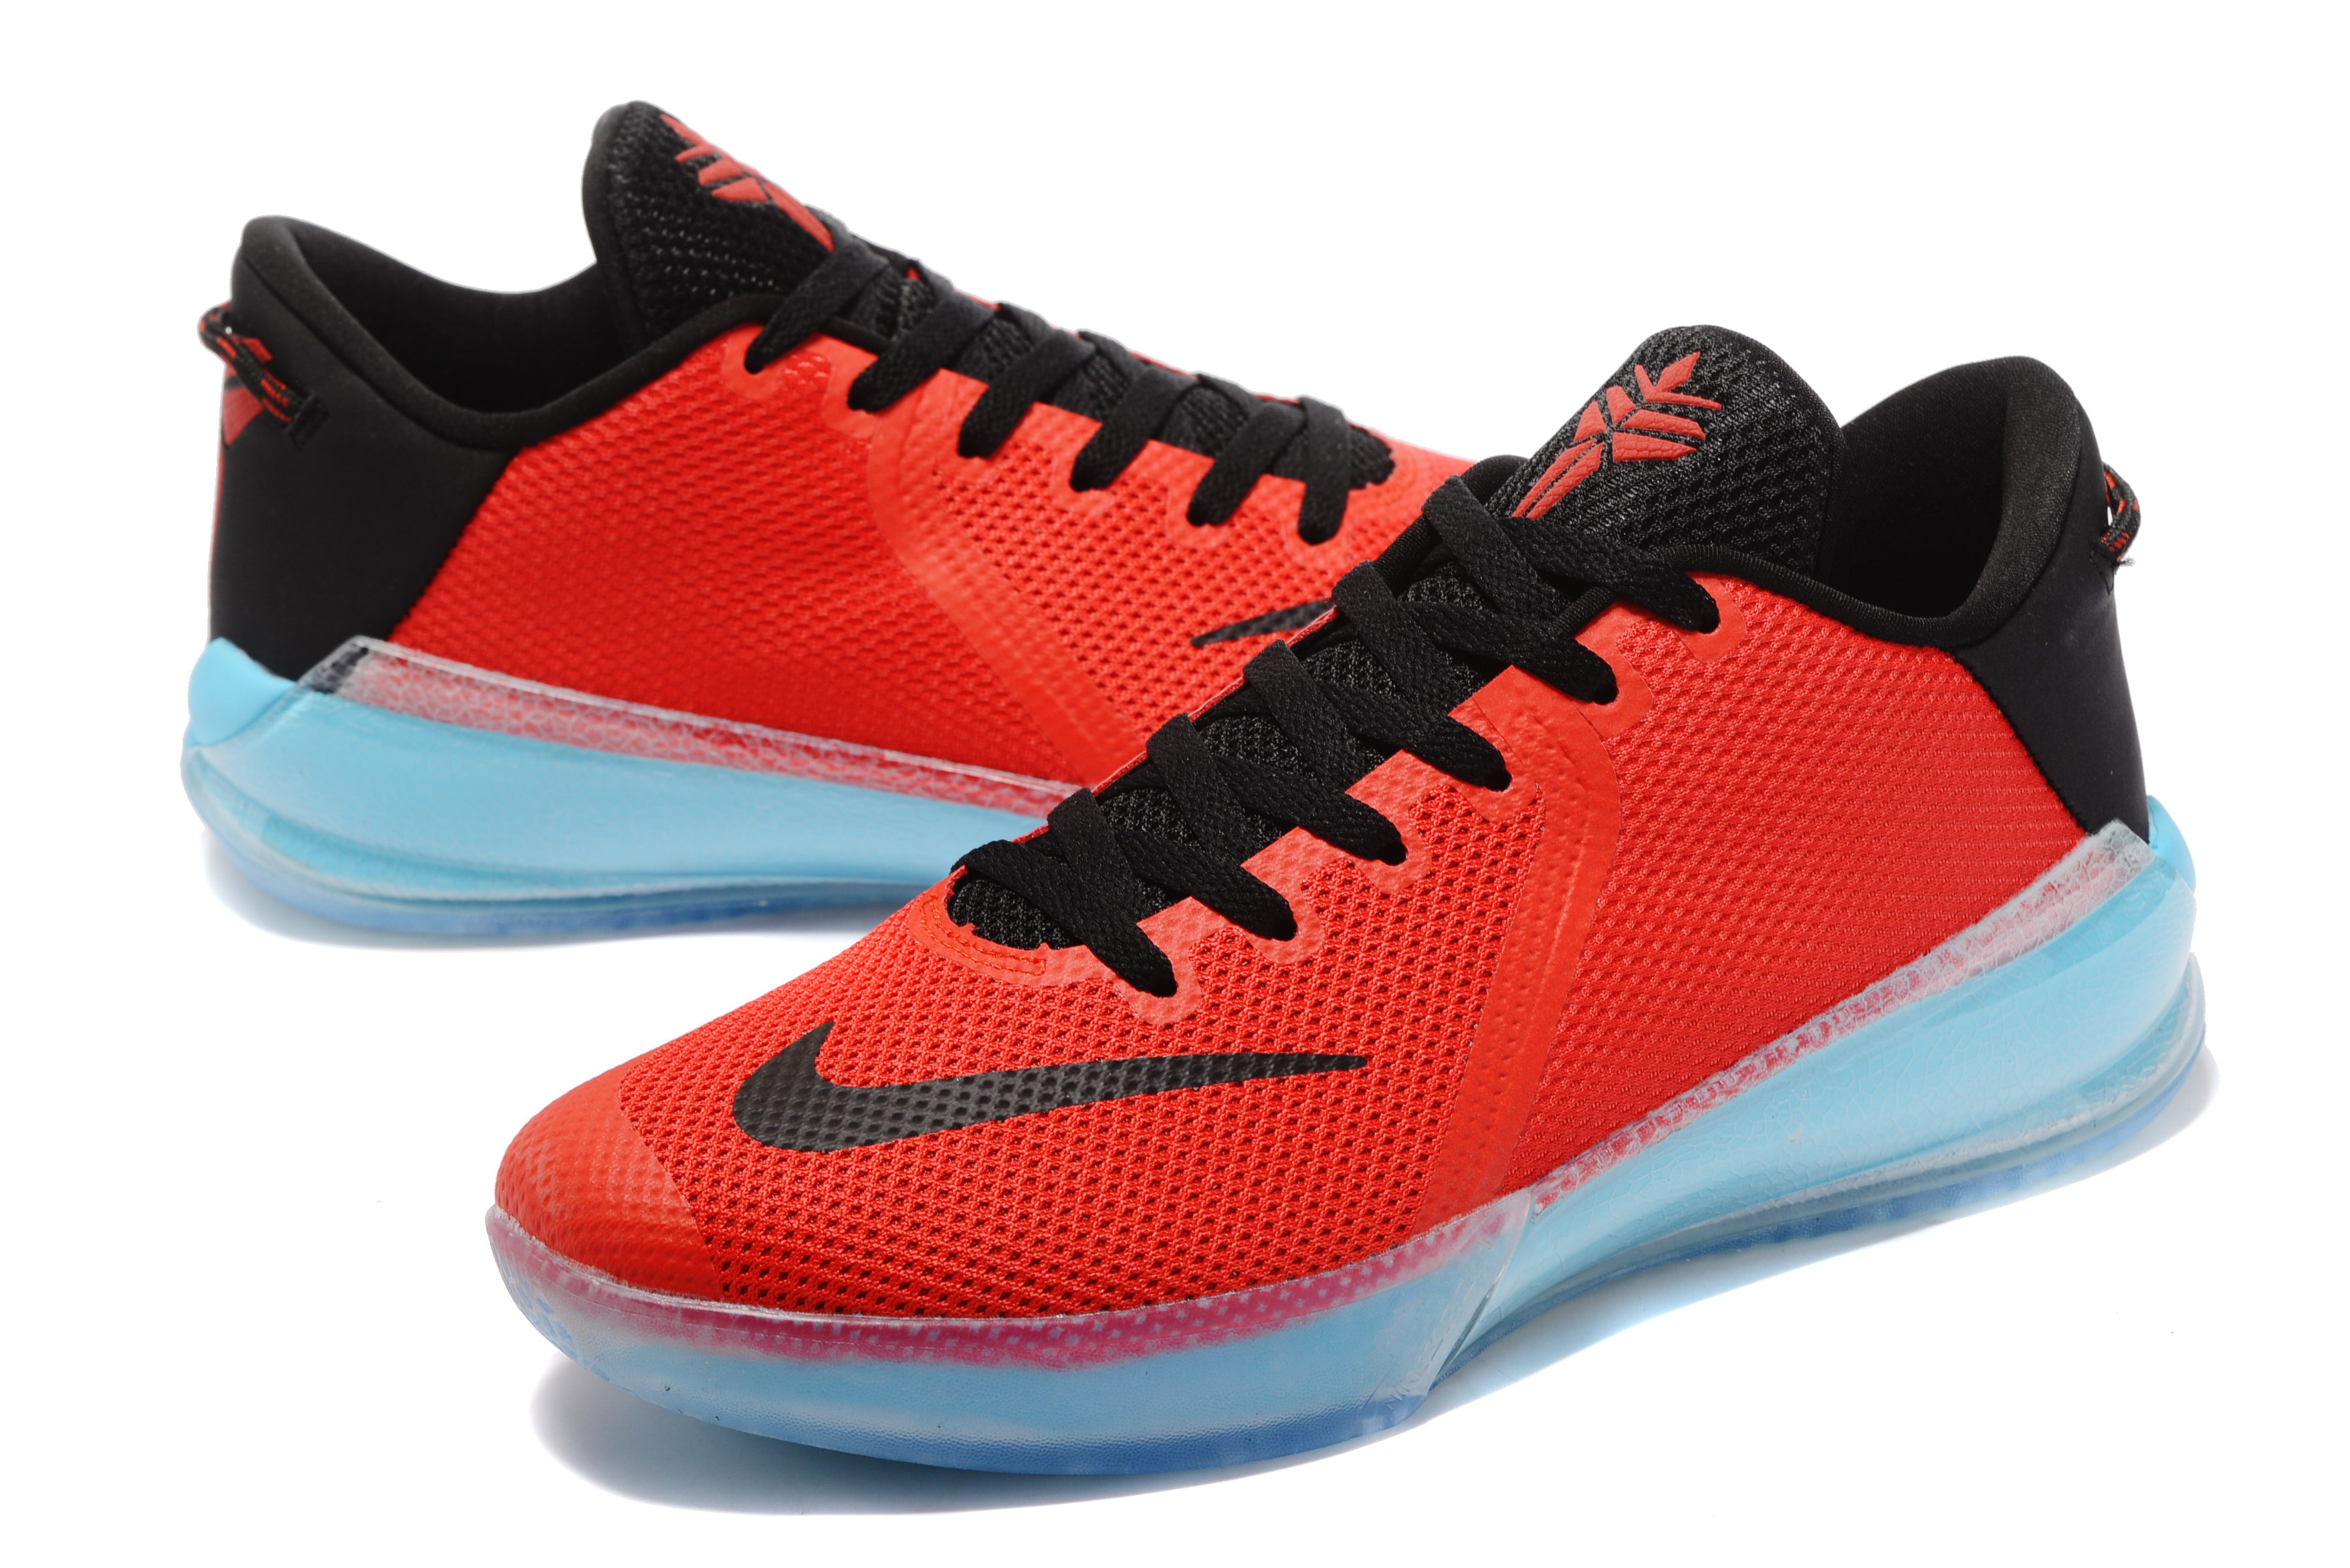 New Kobe Venomenon 6 Red Black Ice Blue Shoes